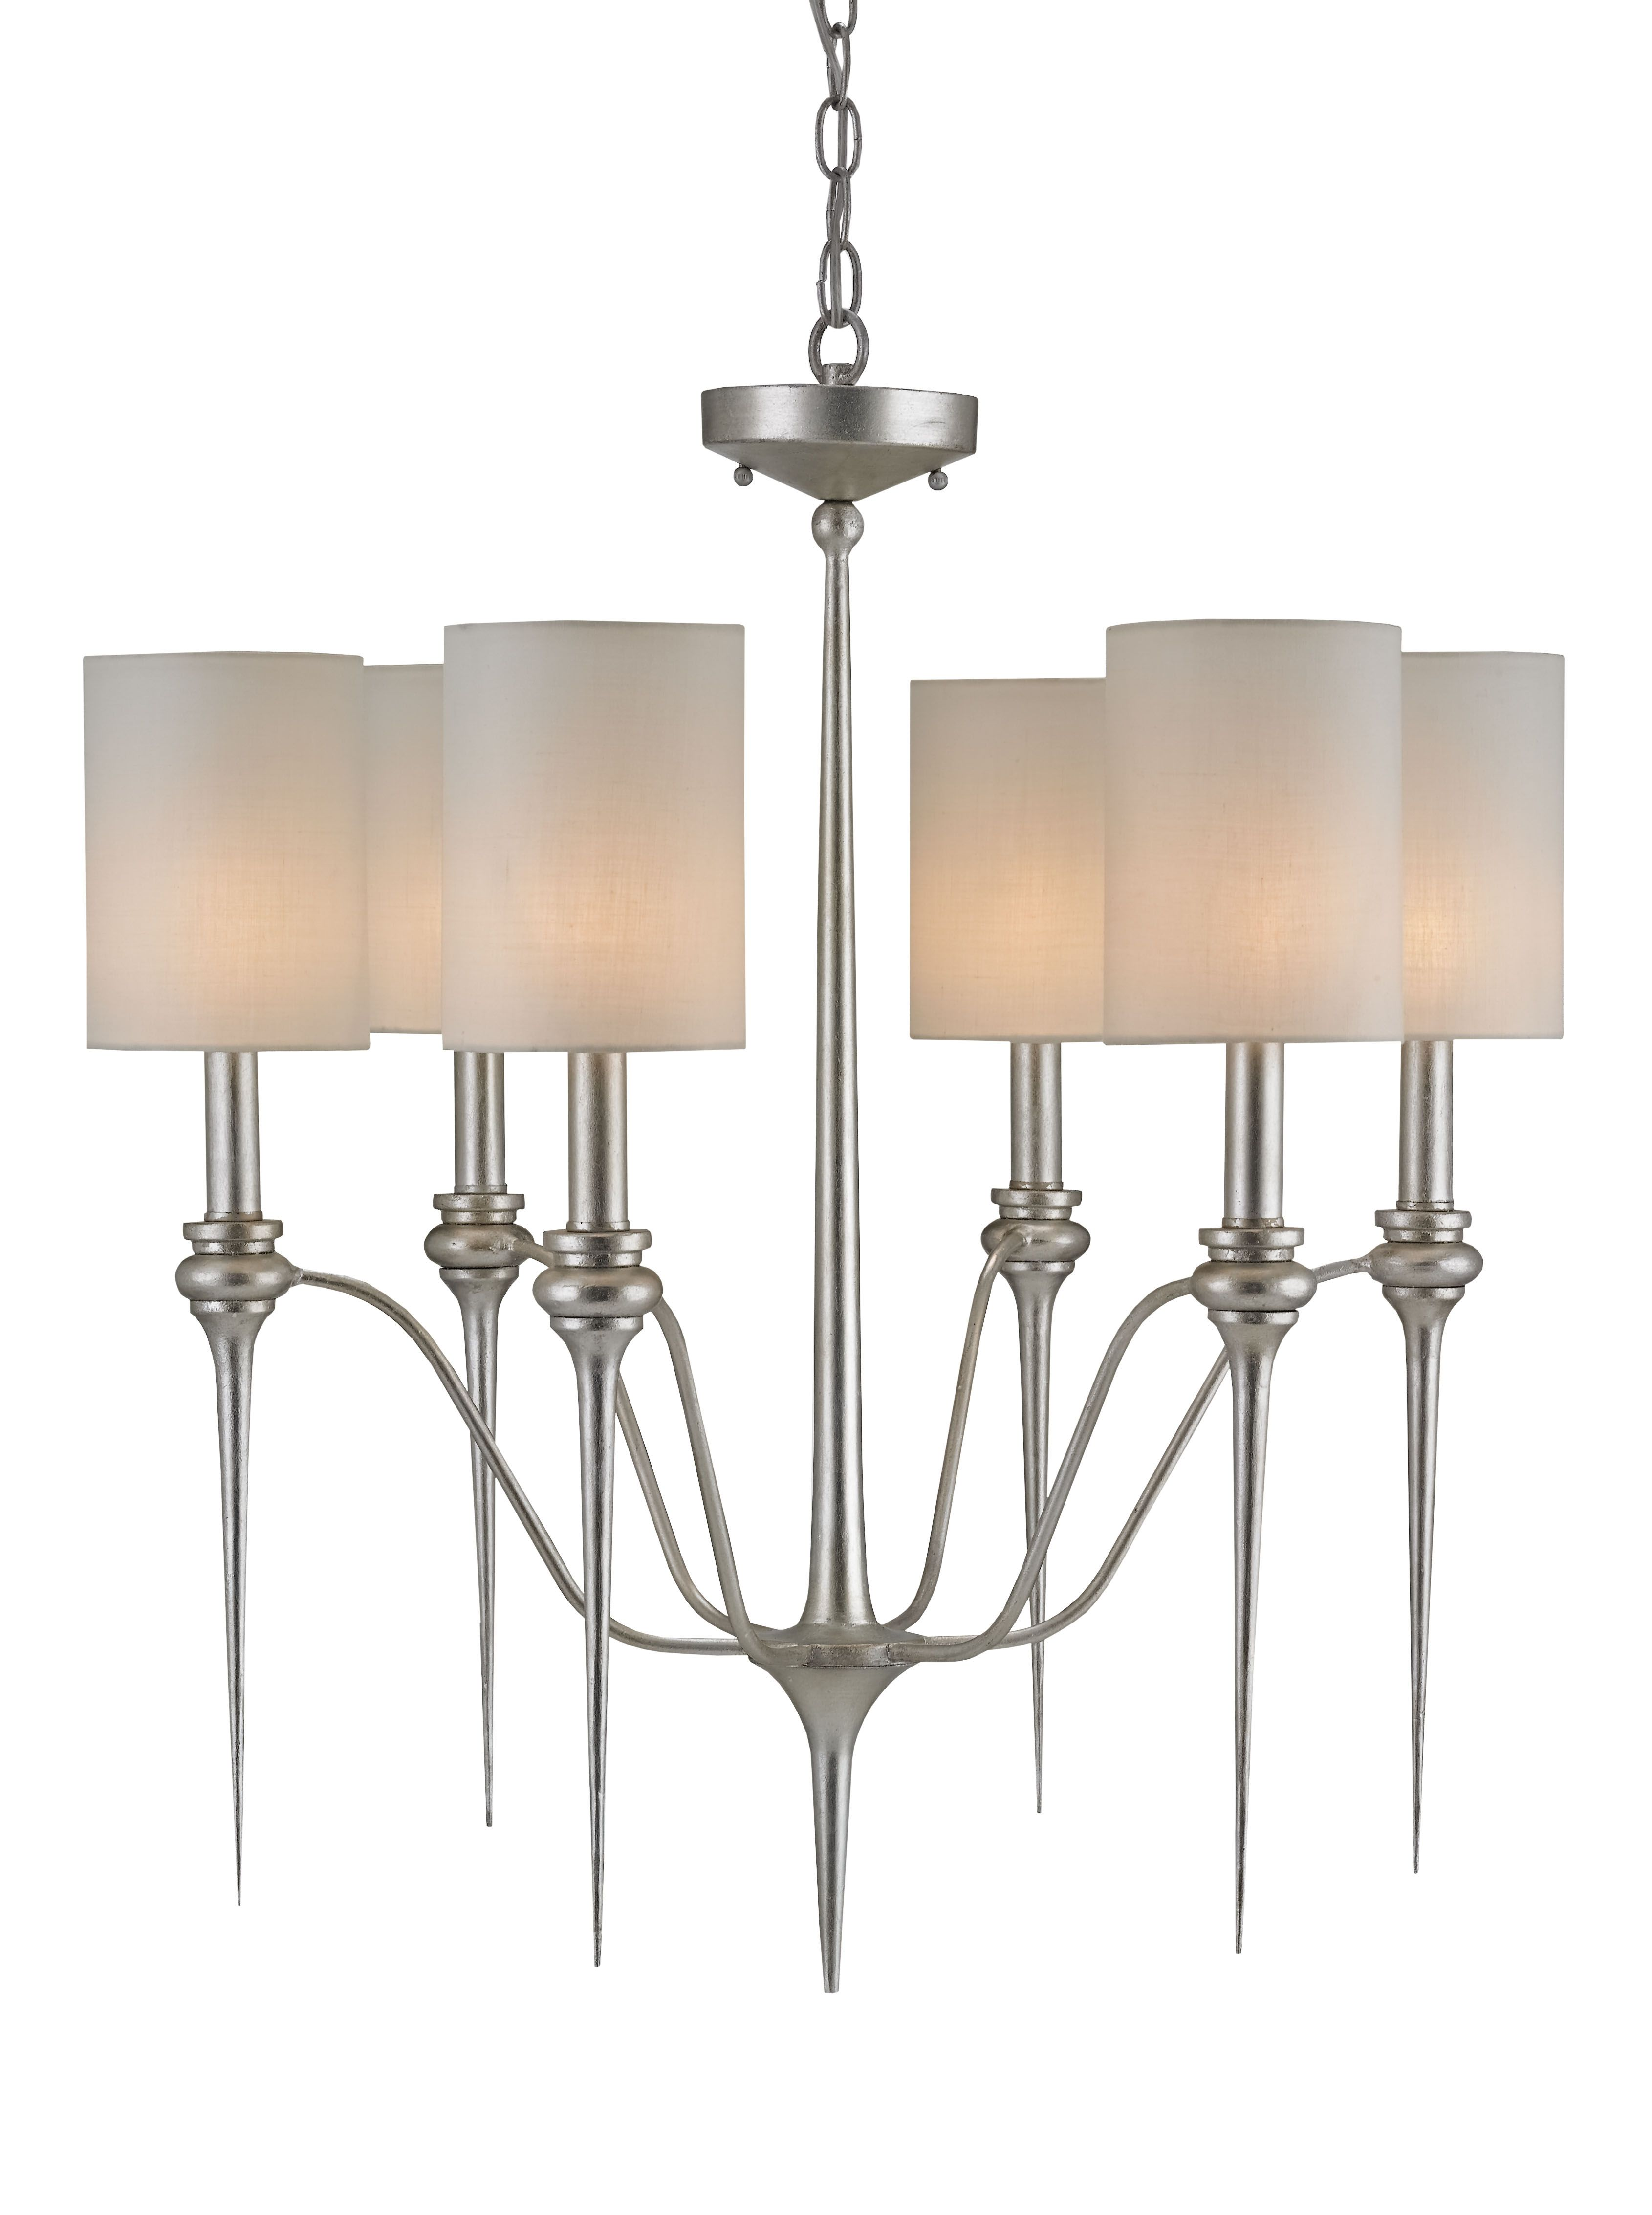 Currey Company Available At Robb Stucky Chandelier Design Flush Chandelier Chandelier For Sale